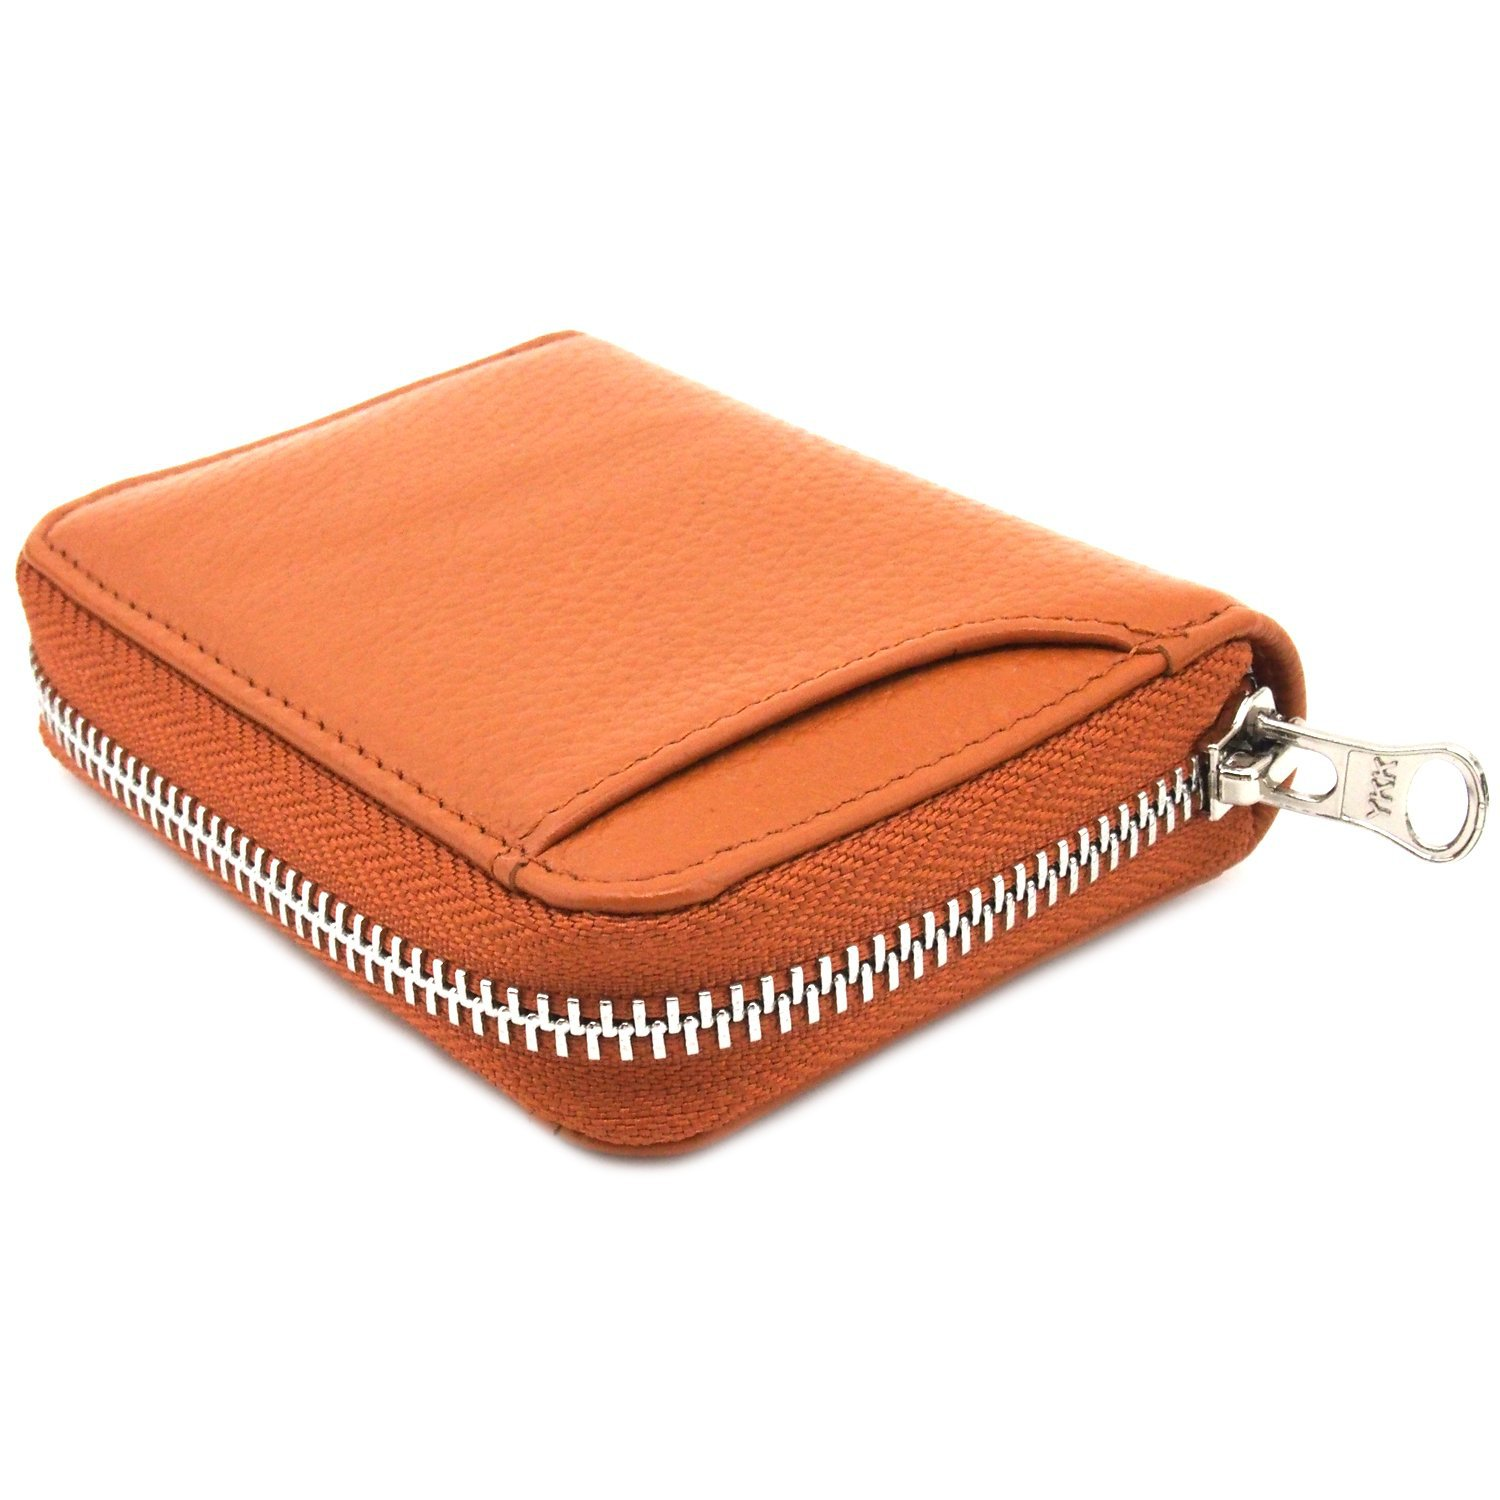 Full-grain Leather Embossed Leather Purse Japan Zipper Genuine Leather Purse Large Capacity Universal Coin Wallet